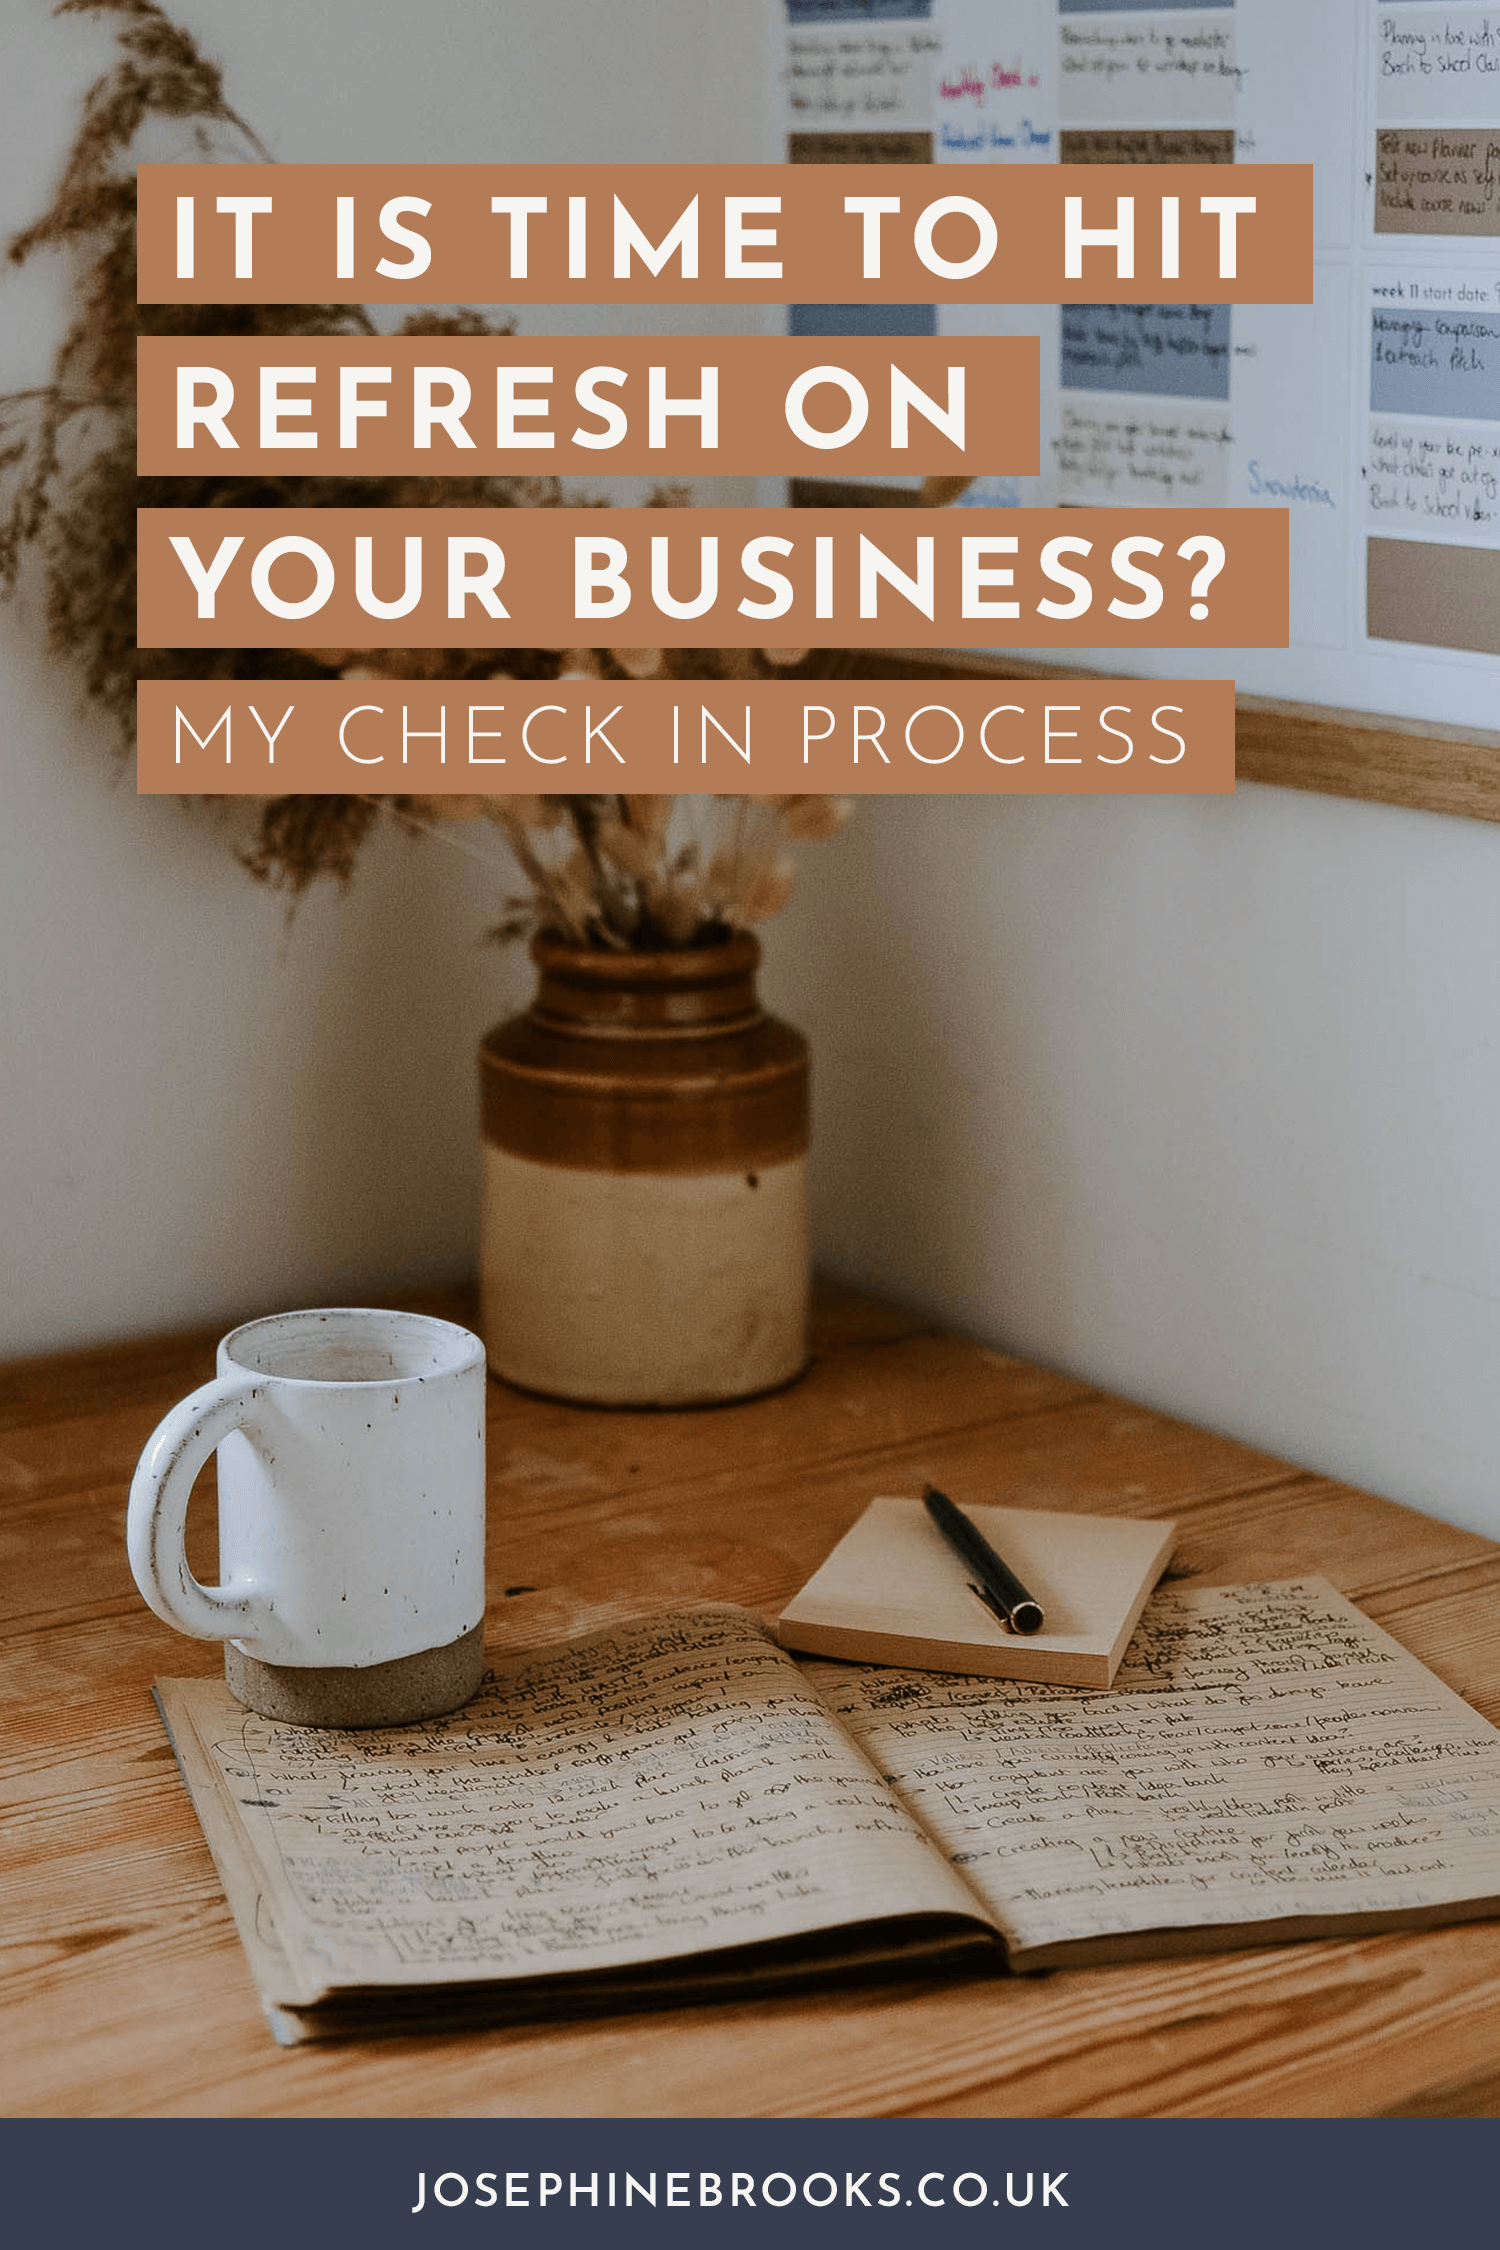 Is it Time to Hit Refresh on Your business? A mid-year check in process, how to get organised in business, review your business, make a business plan | Josephine Brooks